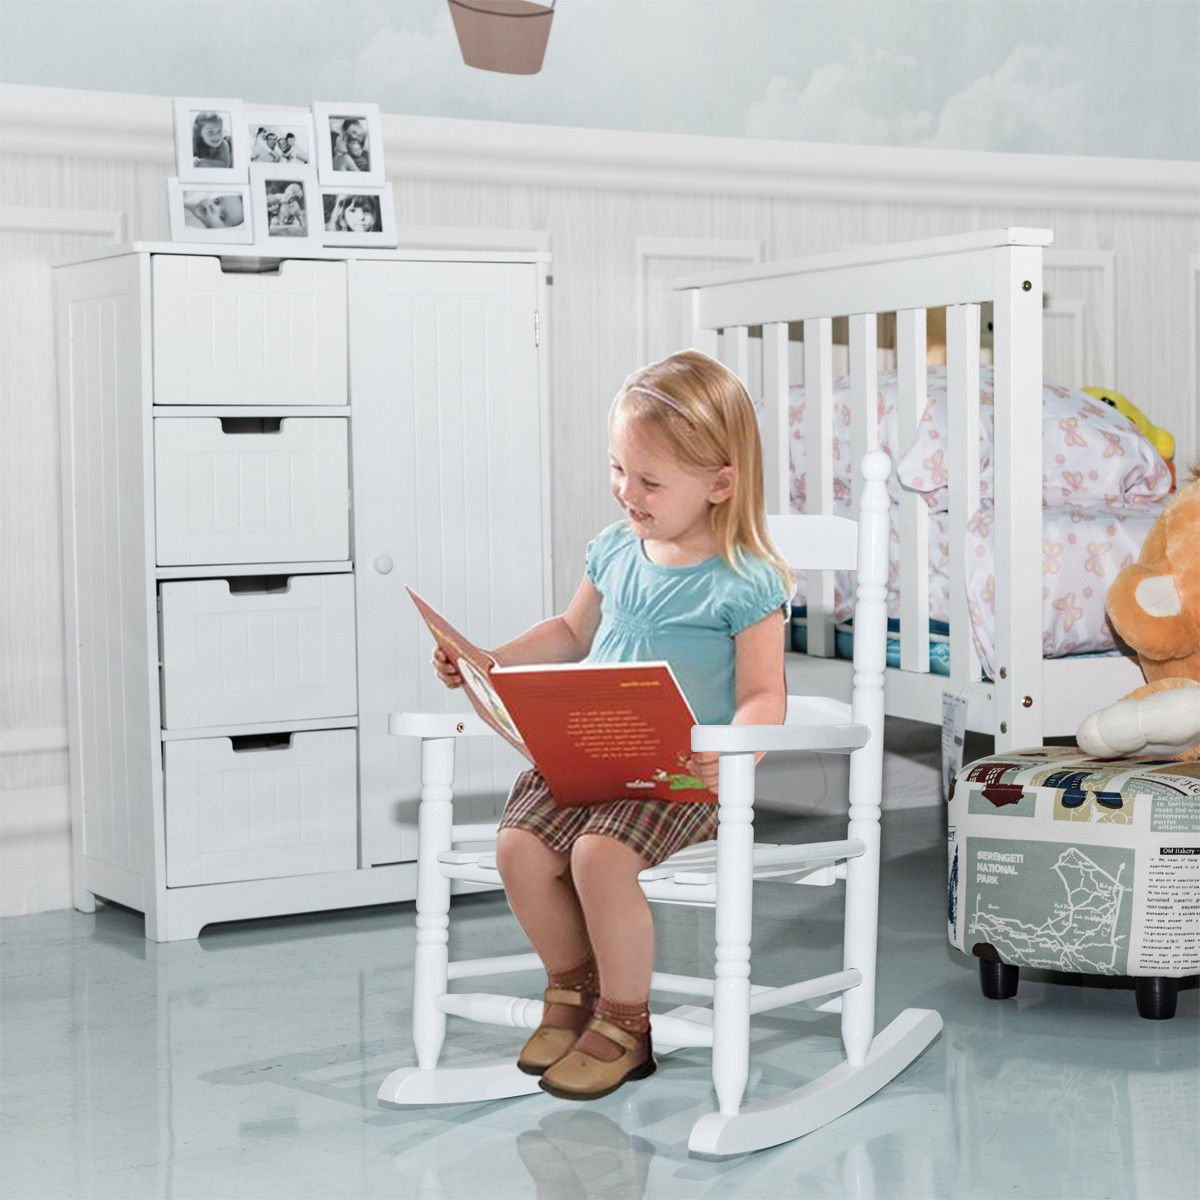 Simply Silver - Rocking Chair - Classic White Wooden Children Kids Rocking Chair Slat Back Furniture Bedroom